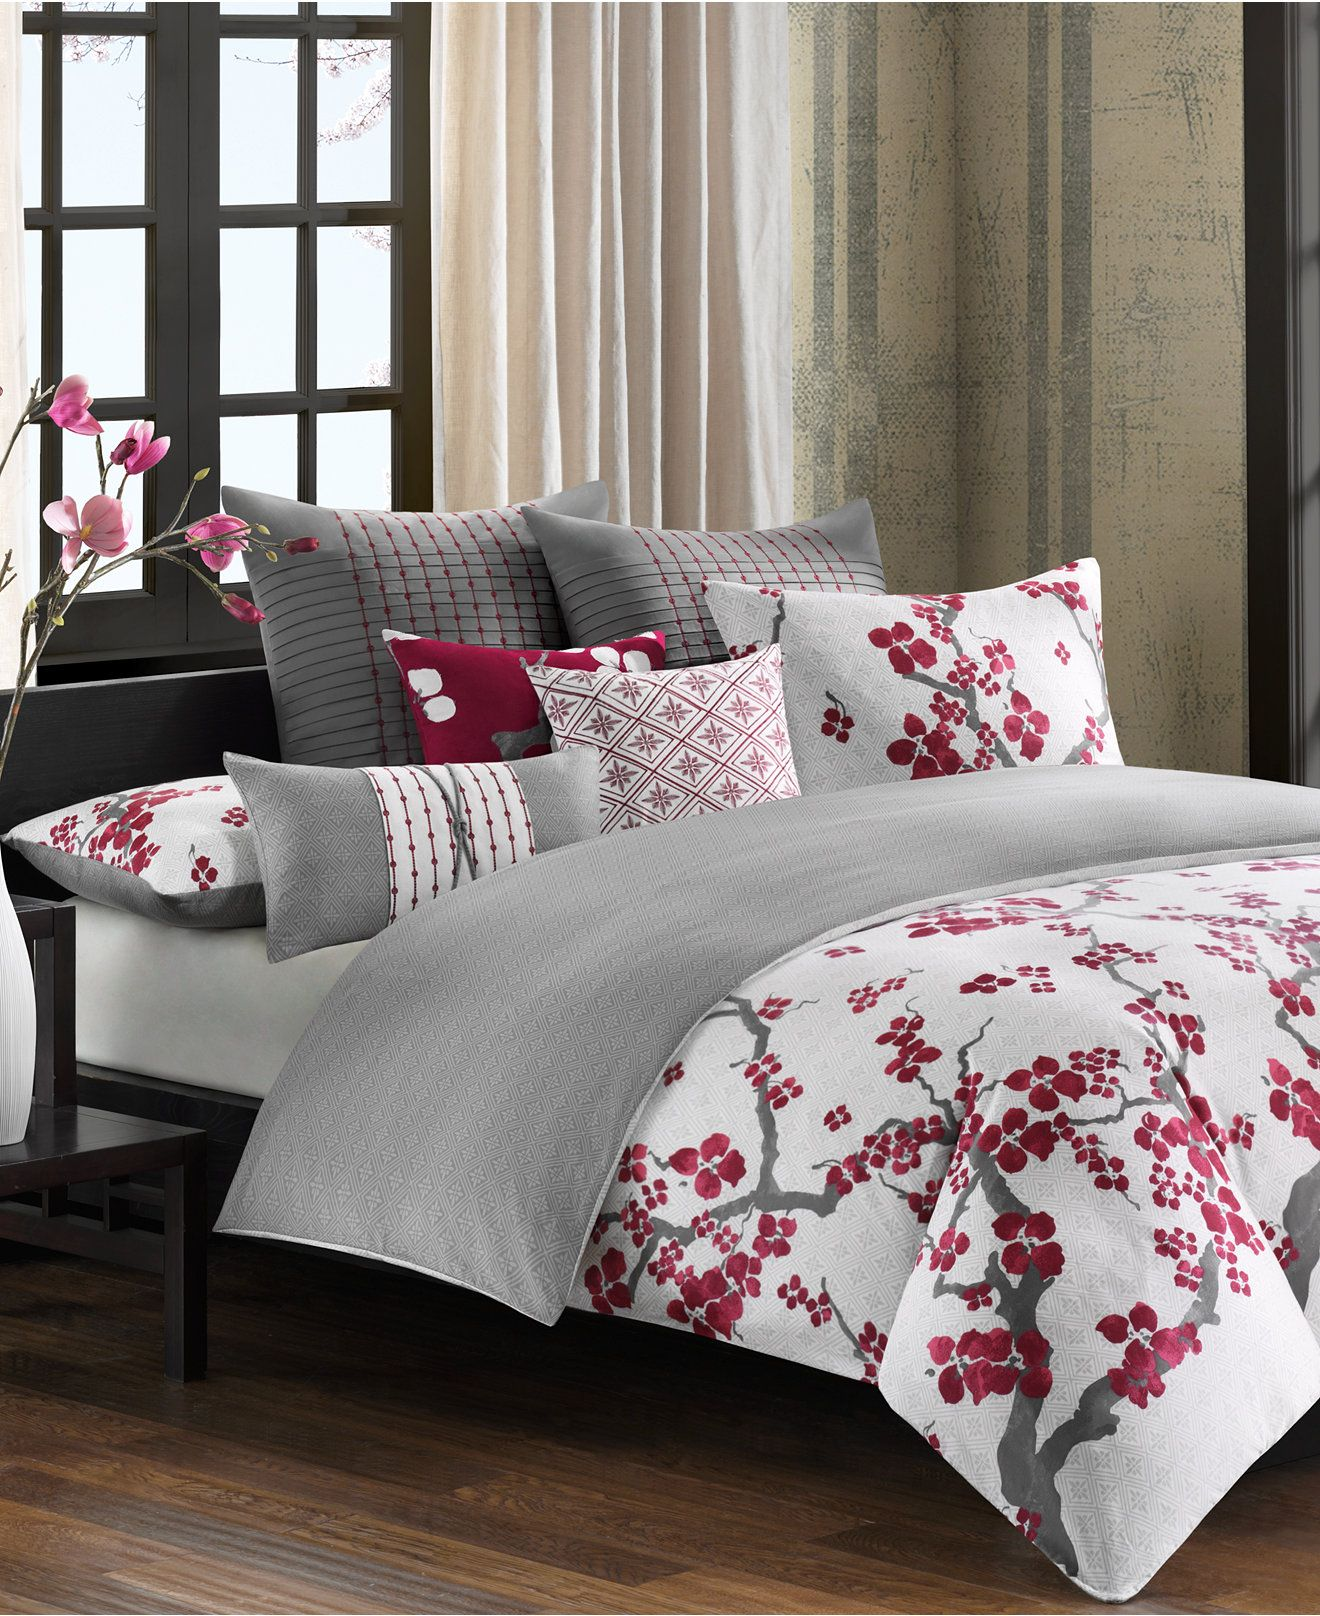 n natori cherry blossom comforter sets and duvet covers  bedding  - n natori cherry blossom comforter sets and duvet covers  beddingcollections  bed  bath